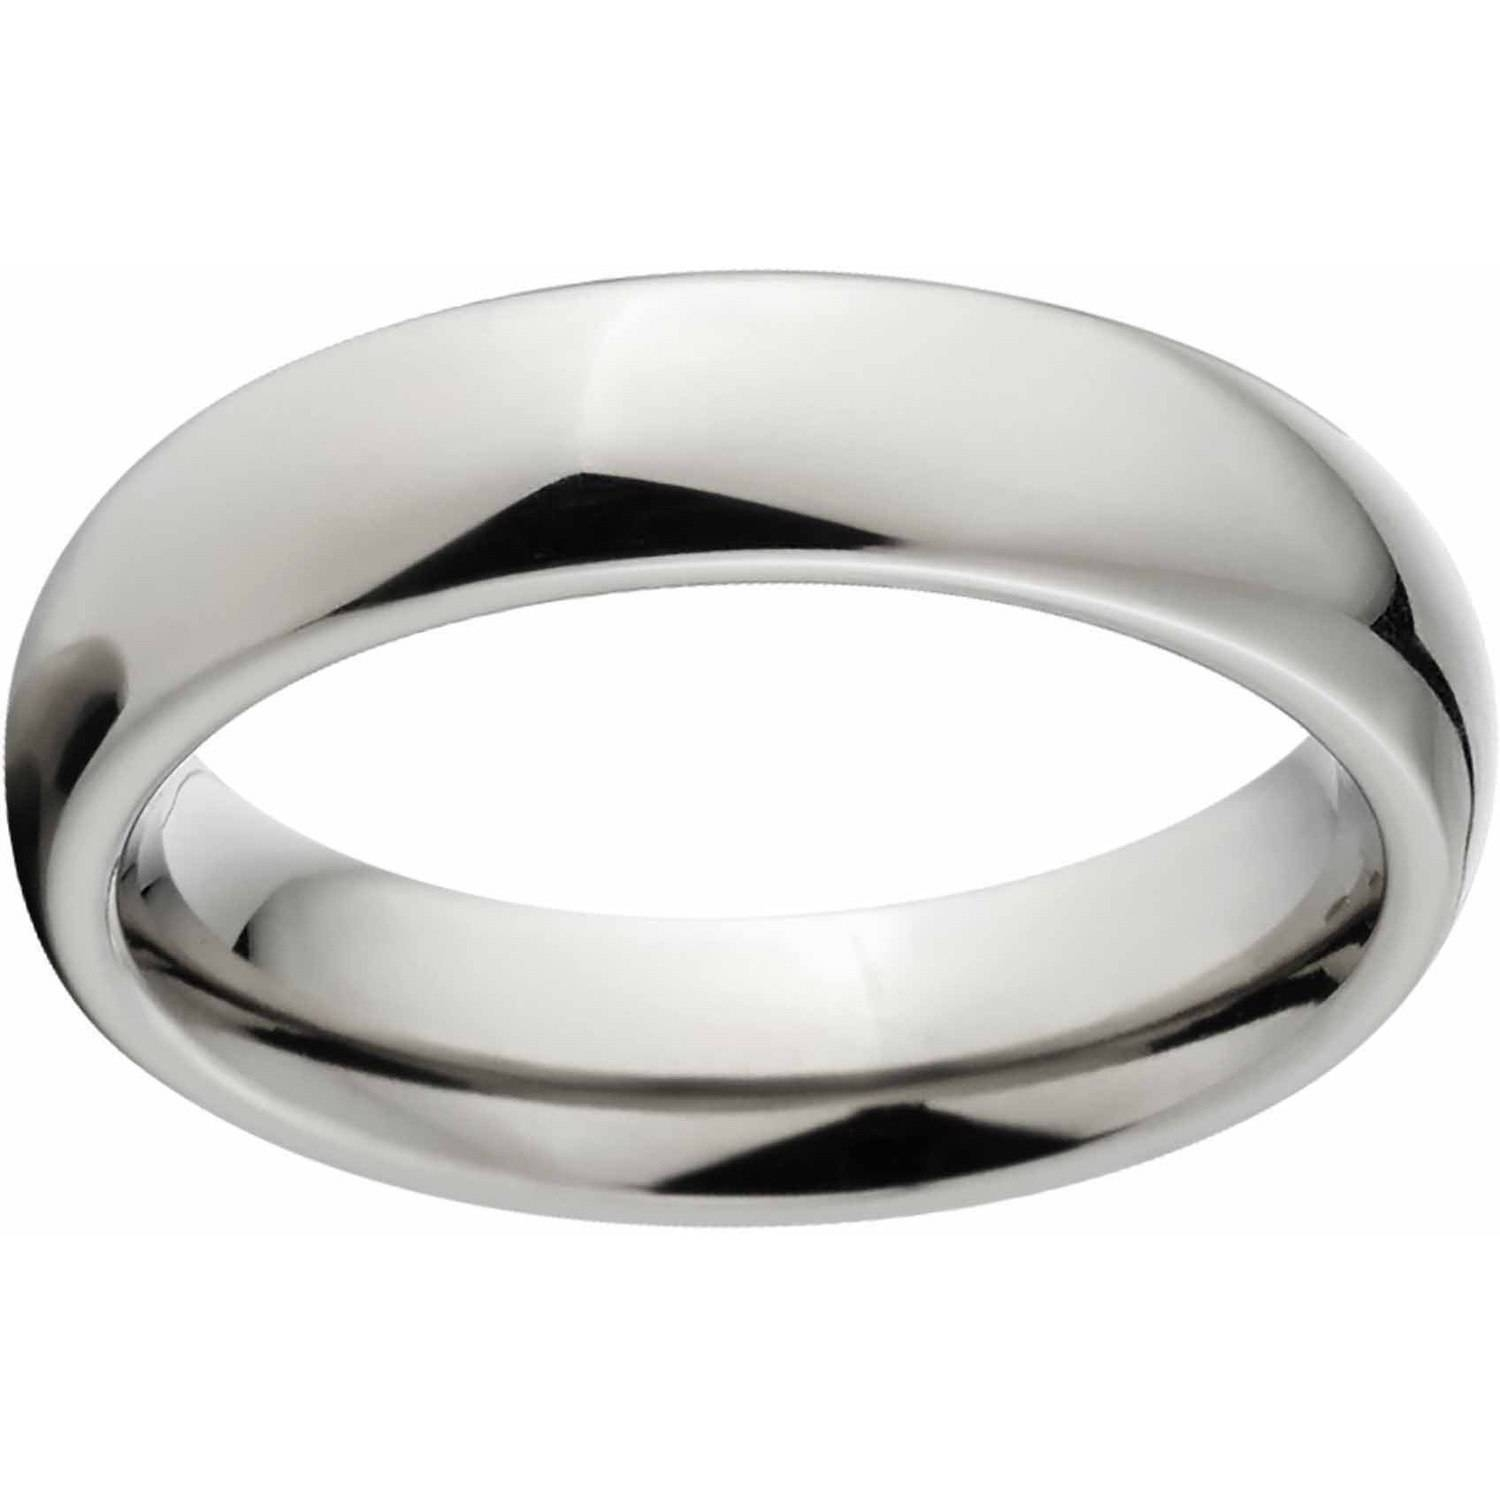 Polished 4Mm Titanium Wedding Band With Comfort Fit Design In Titanium Mens Wedding Bands (View 9 of 15)